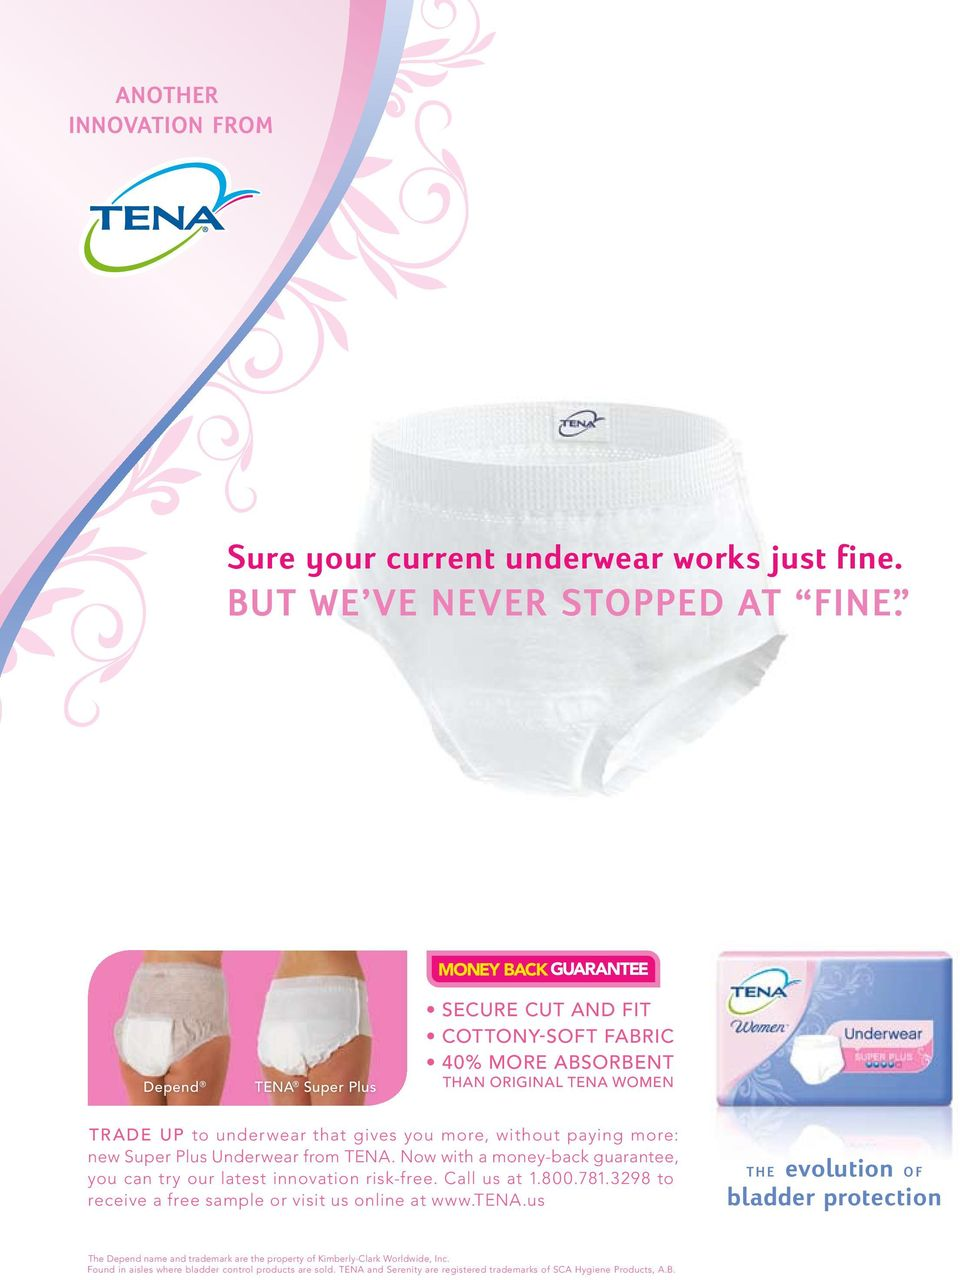 Plus Underwear from TENA. Now with a money-back guarantee, you can try our latest innovation risk-free. Call us at 1.800.781.